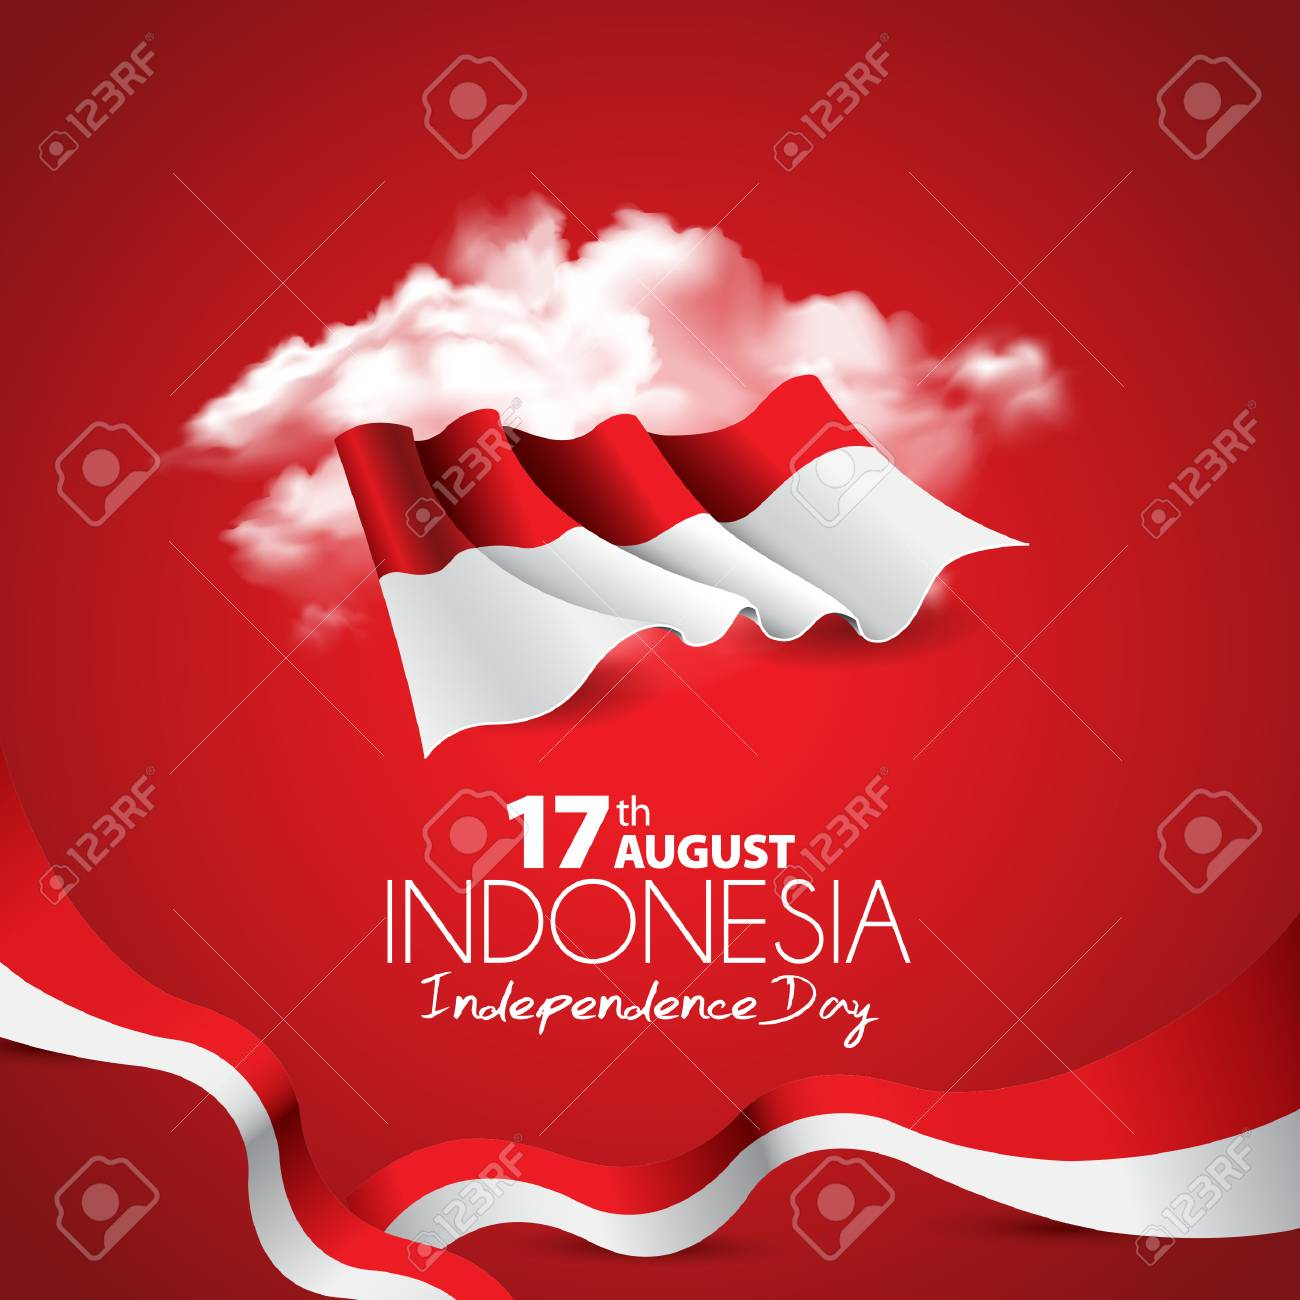 Vector red color Flat design, Illustration of flag. 17th August Indonesia Independence Day concept. - 105628997